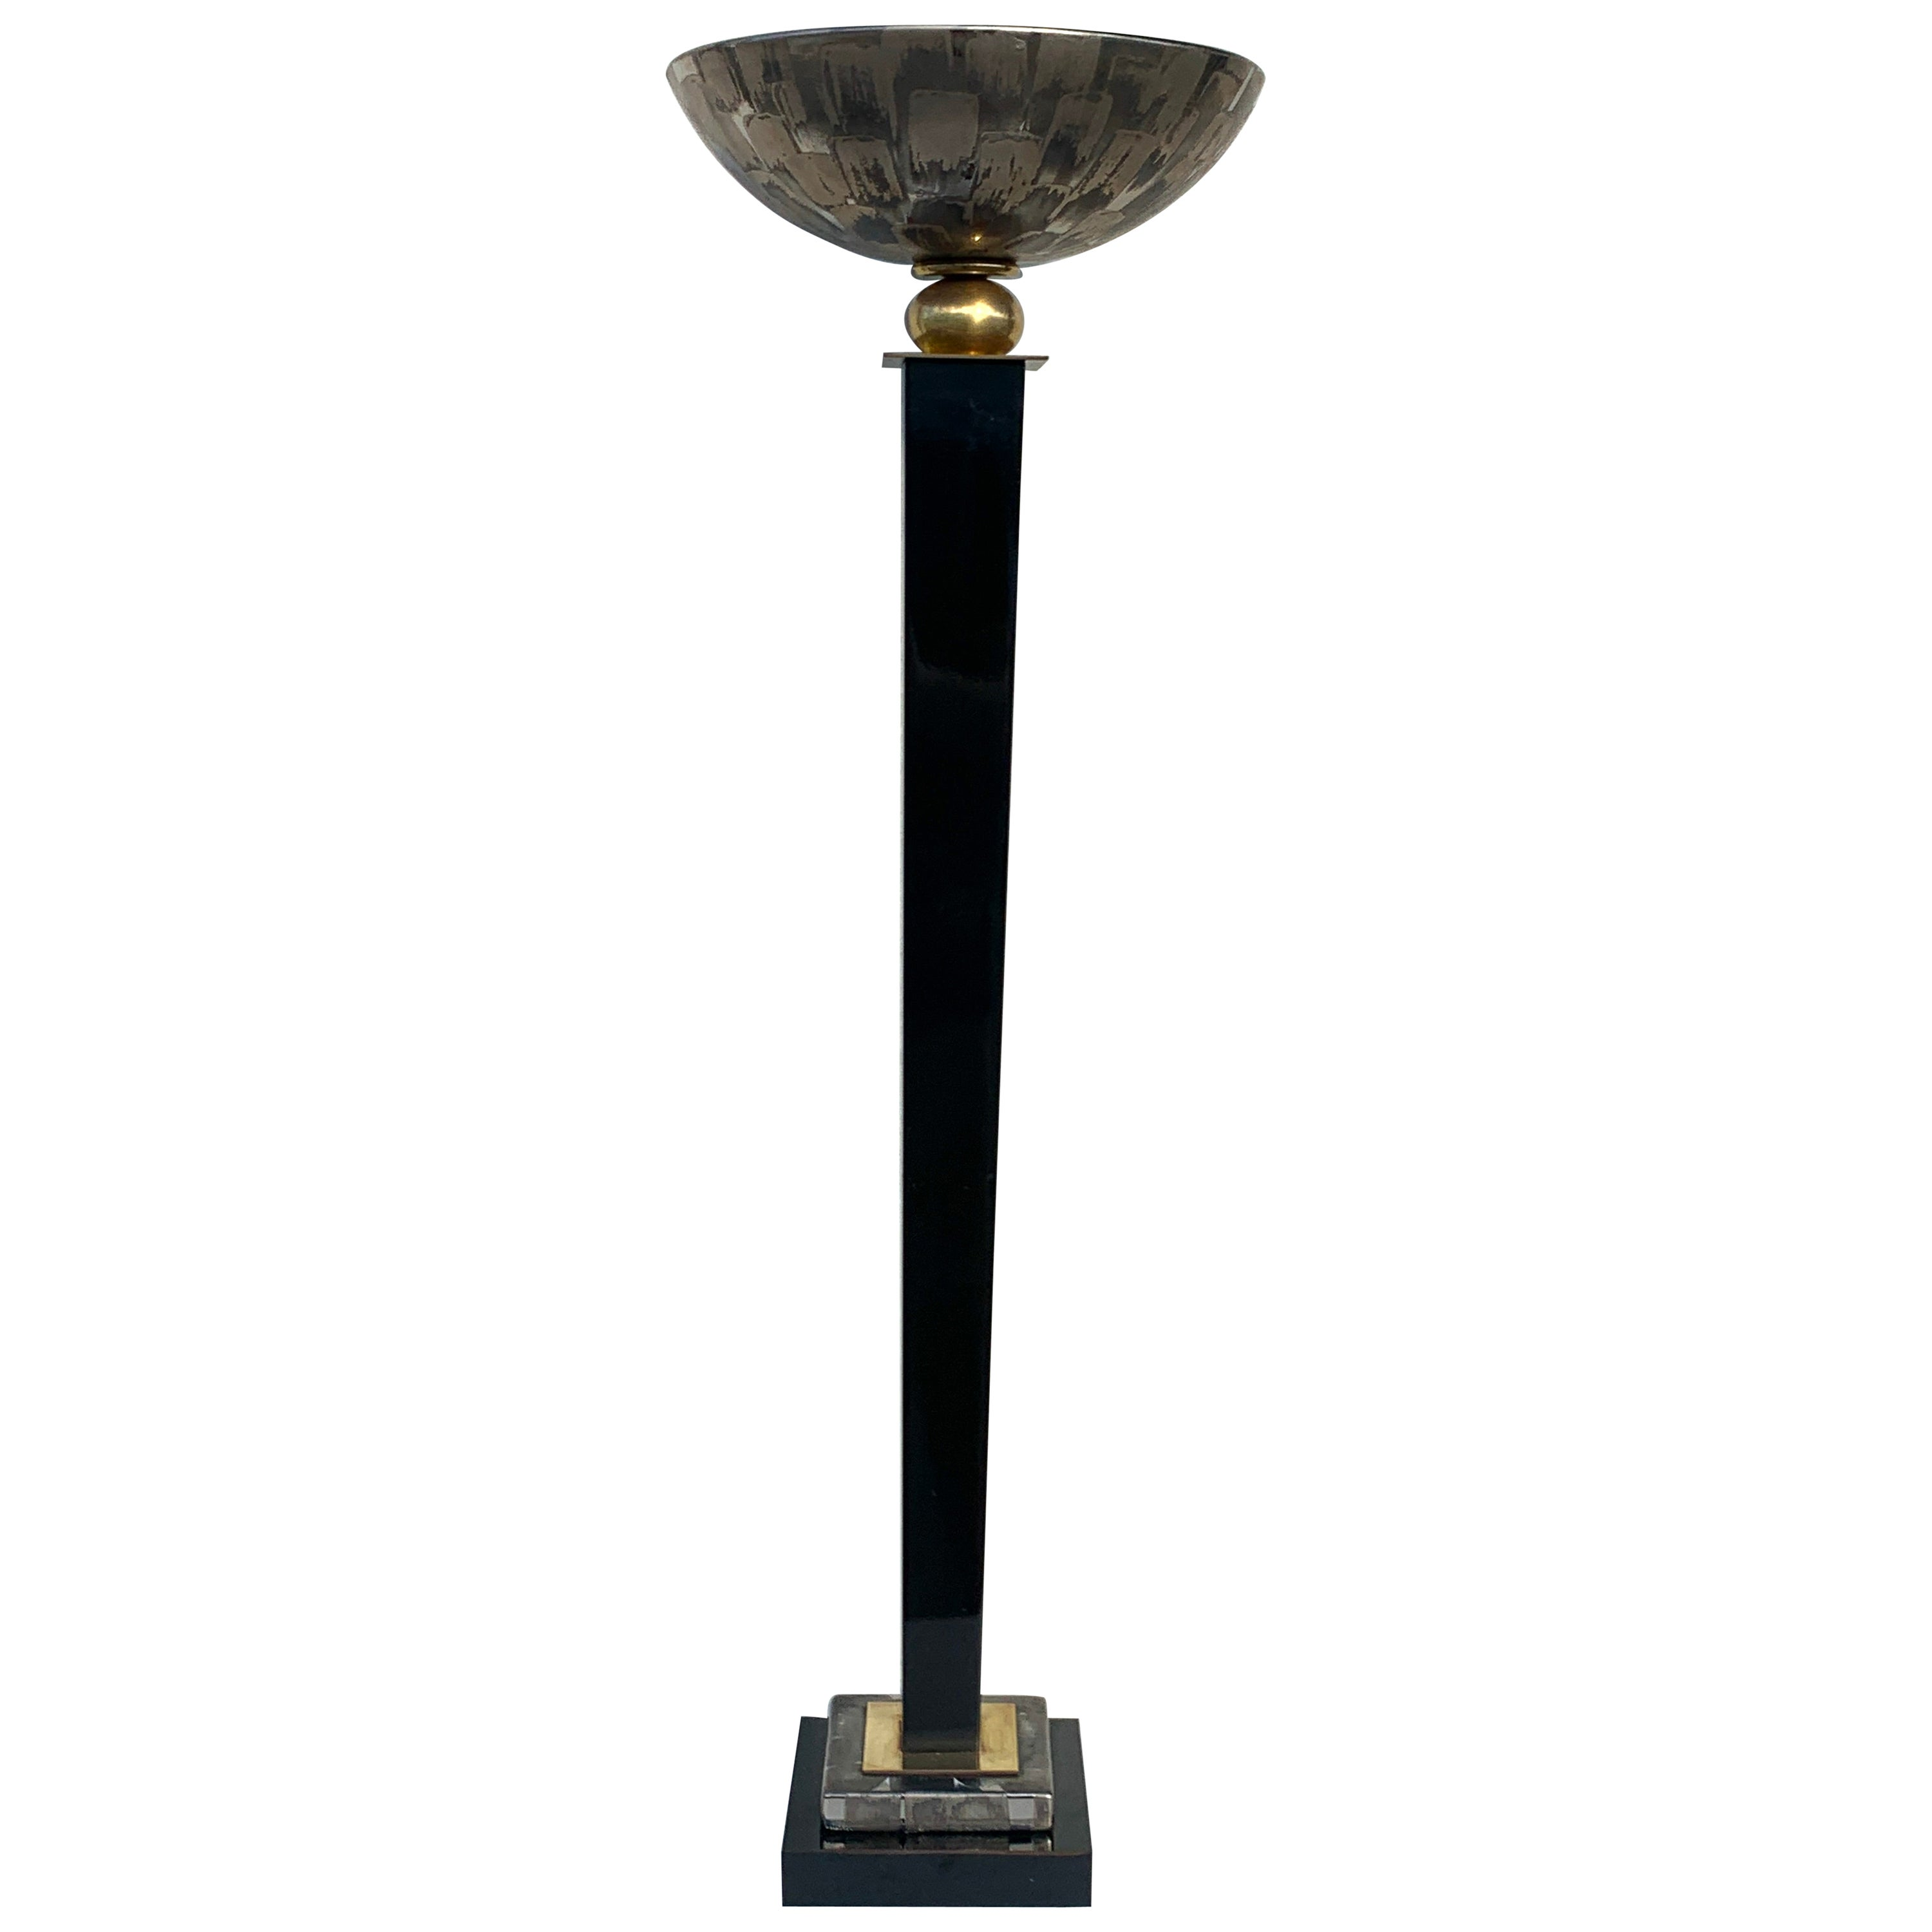 Single Midcentury Table Torchiere Lamp, Attributed to Mangani